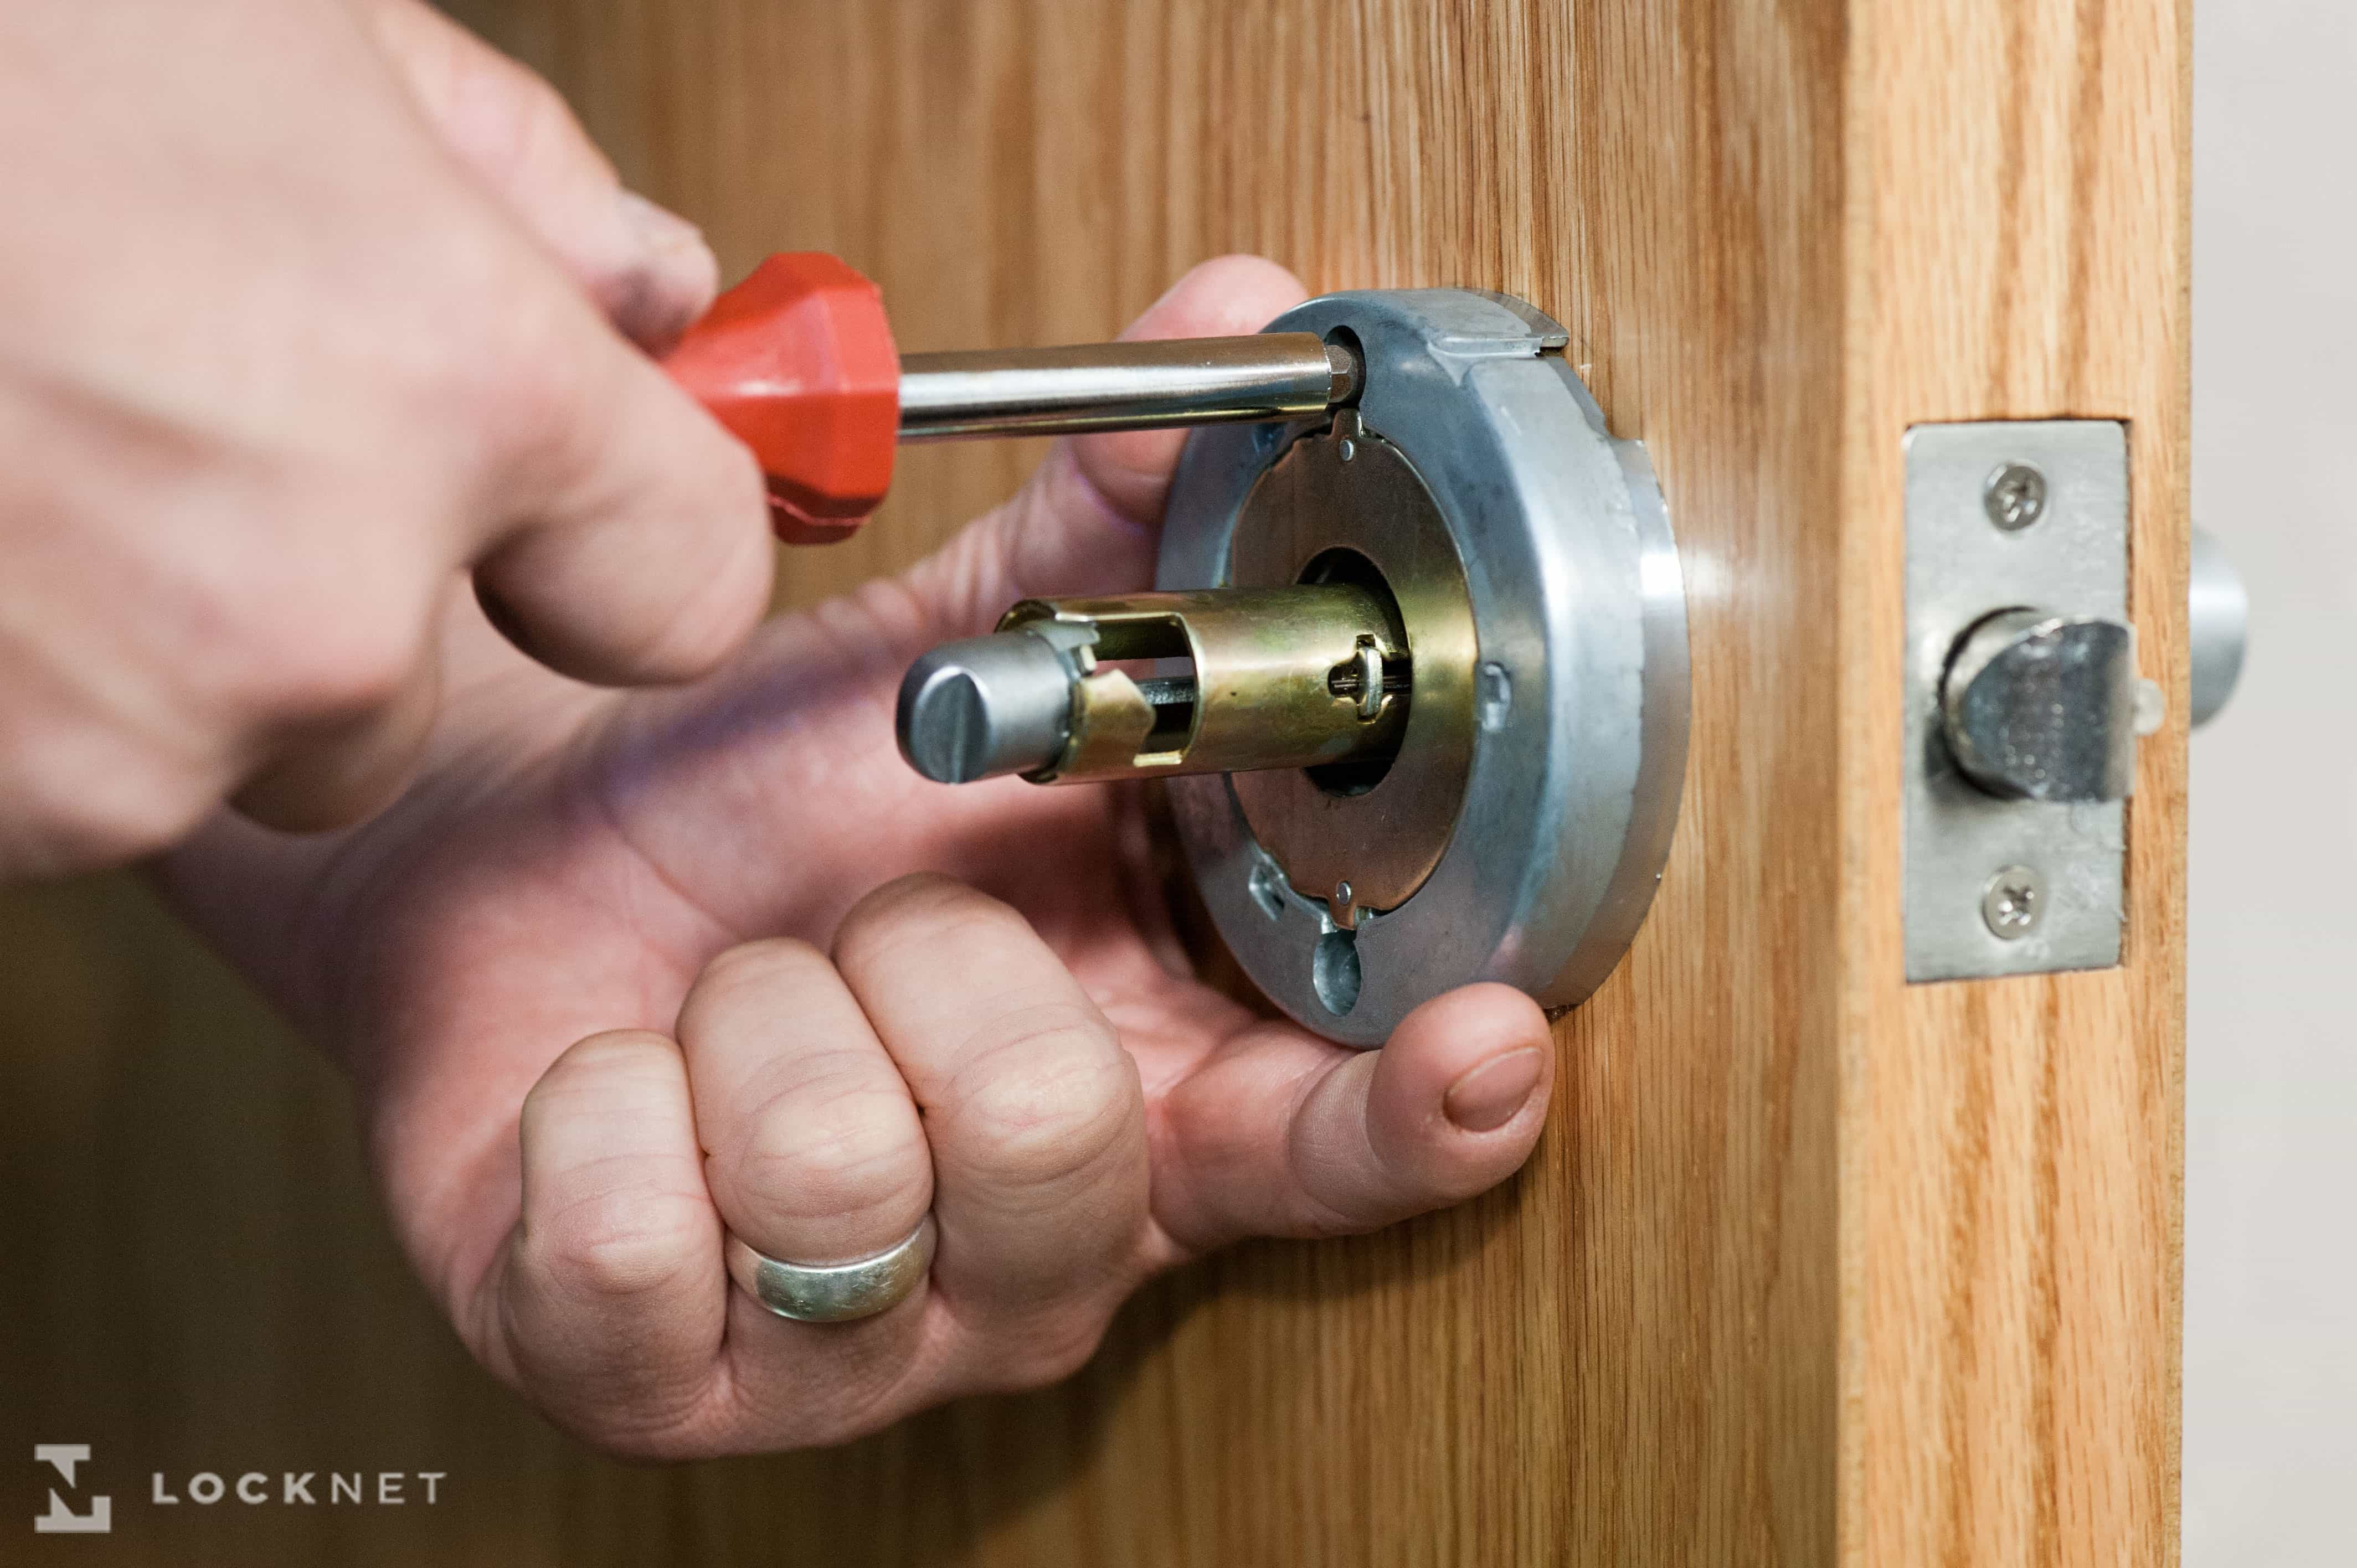 https://www.mpl-locksmith-training.co.uk/wp-content/uploads/2015/01/locksmithing.jpg